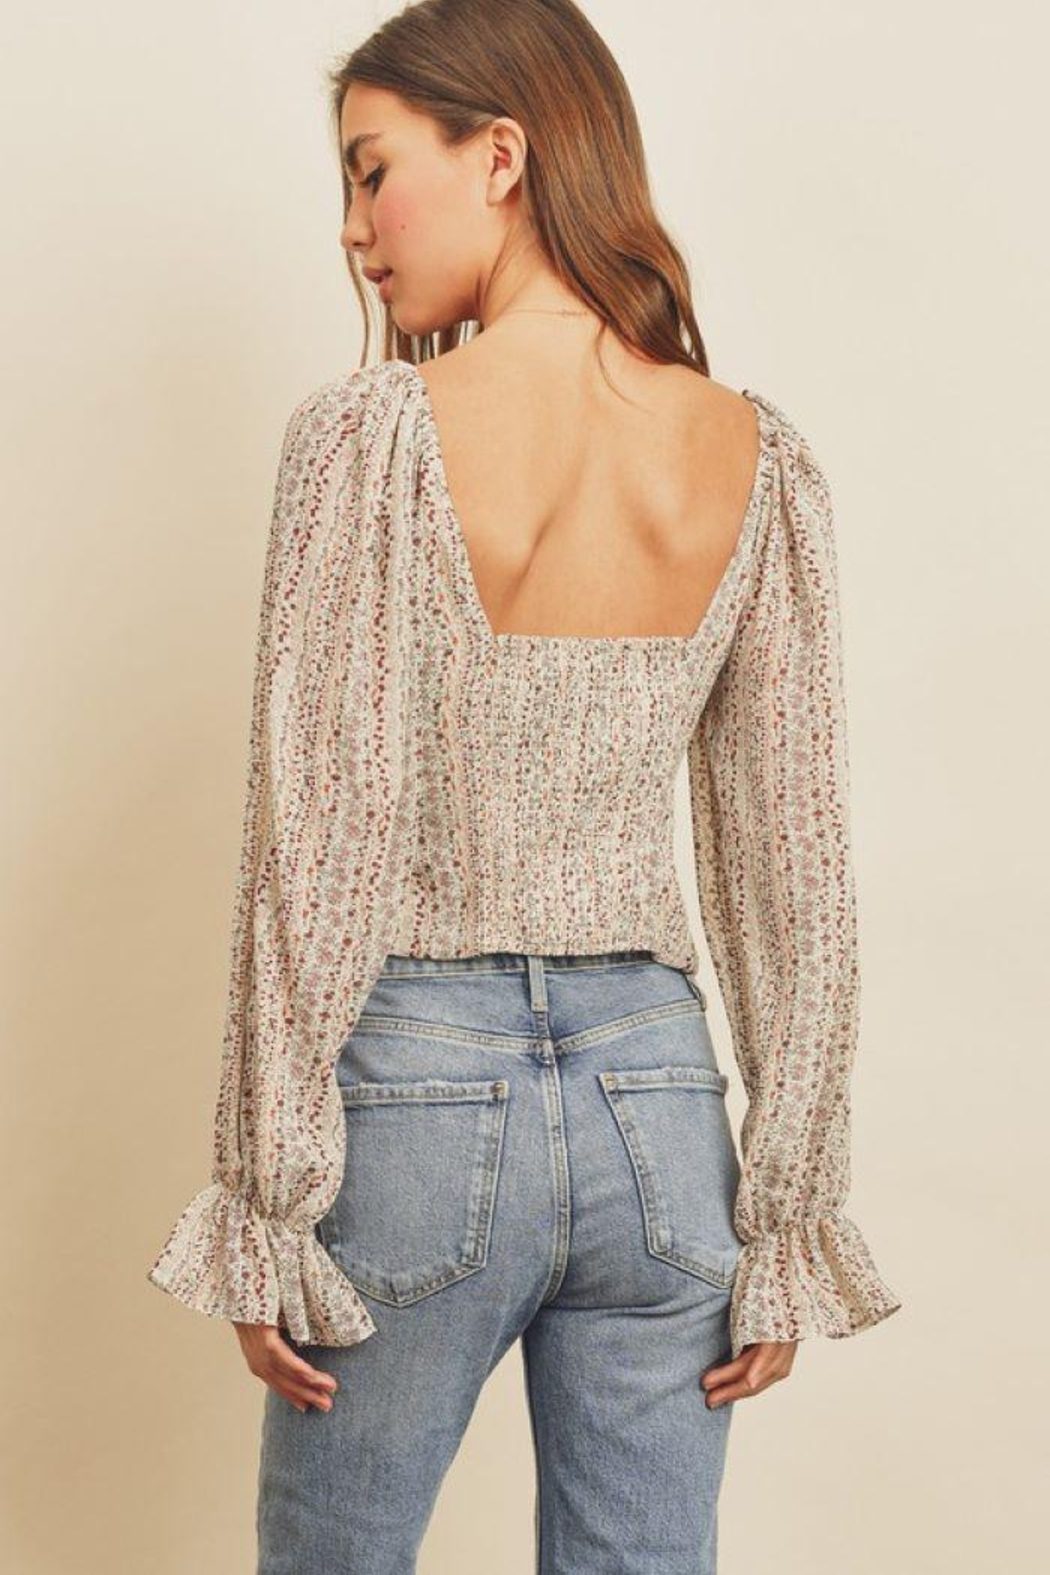 dress forum Striped Floral Plunging Blouse - Side Cropped Image